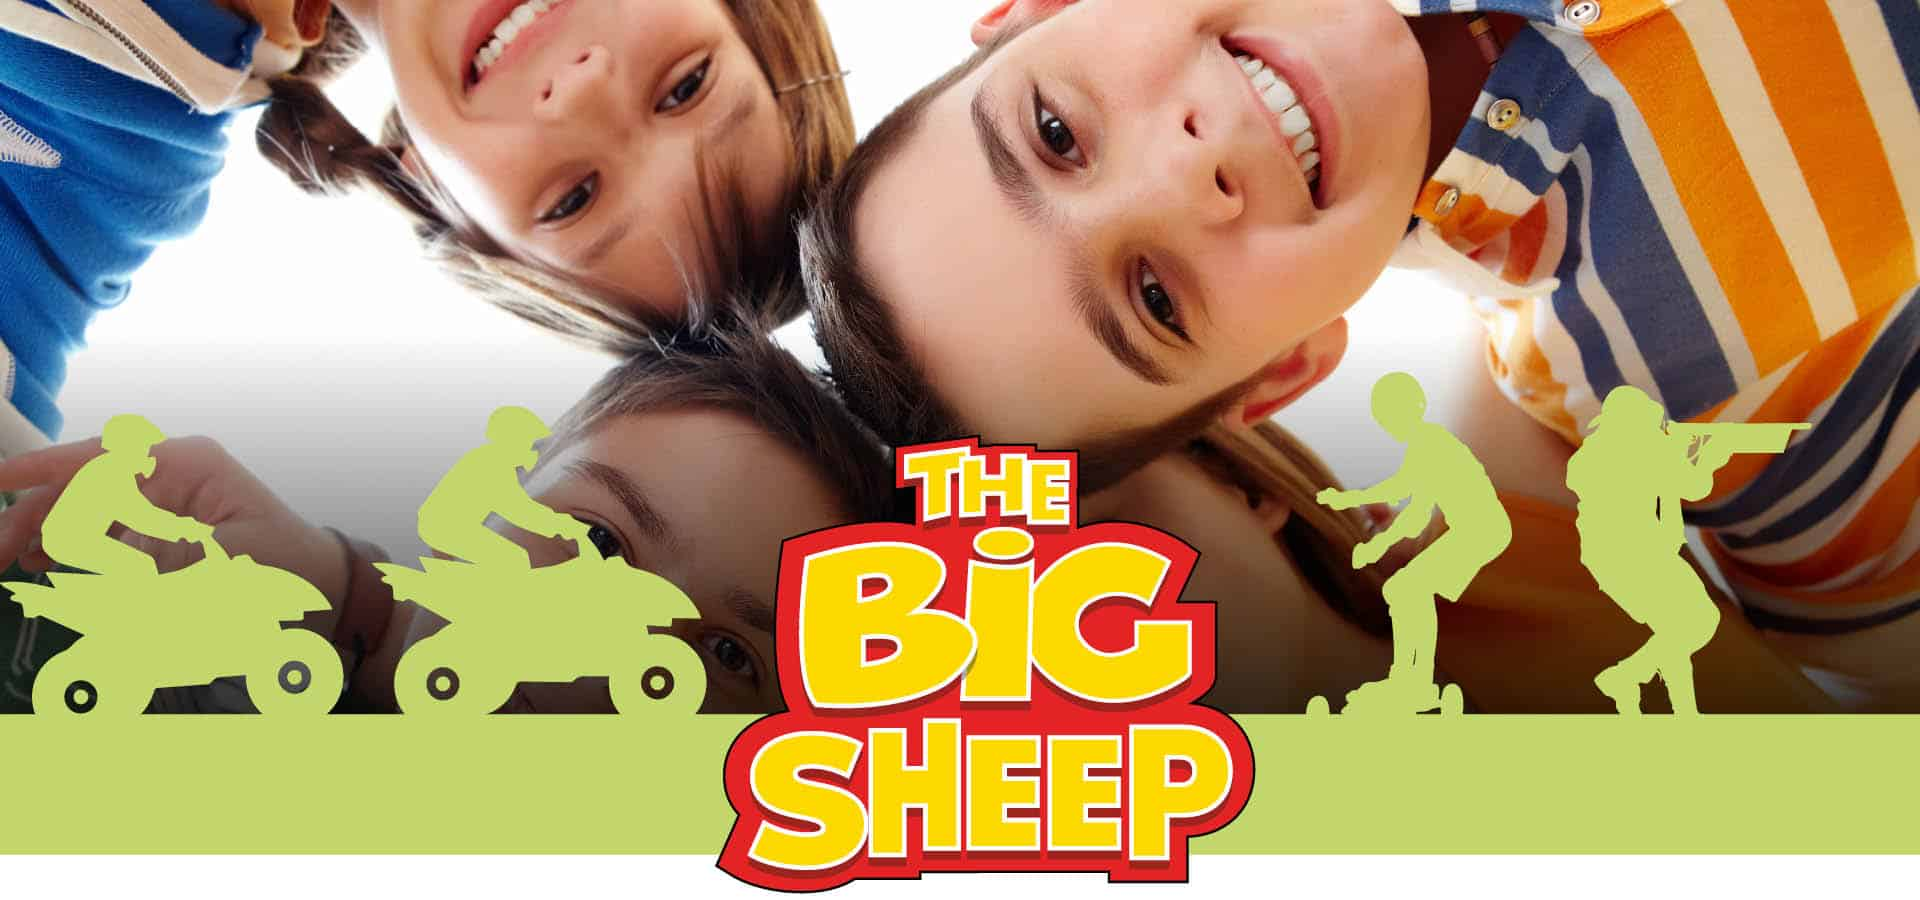 The Big Sheep Teen Attractions